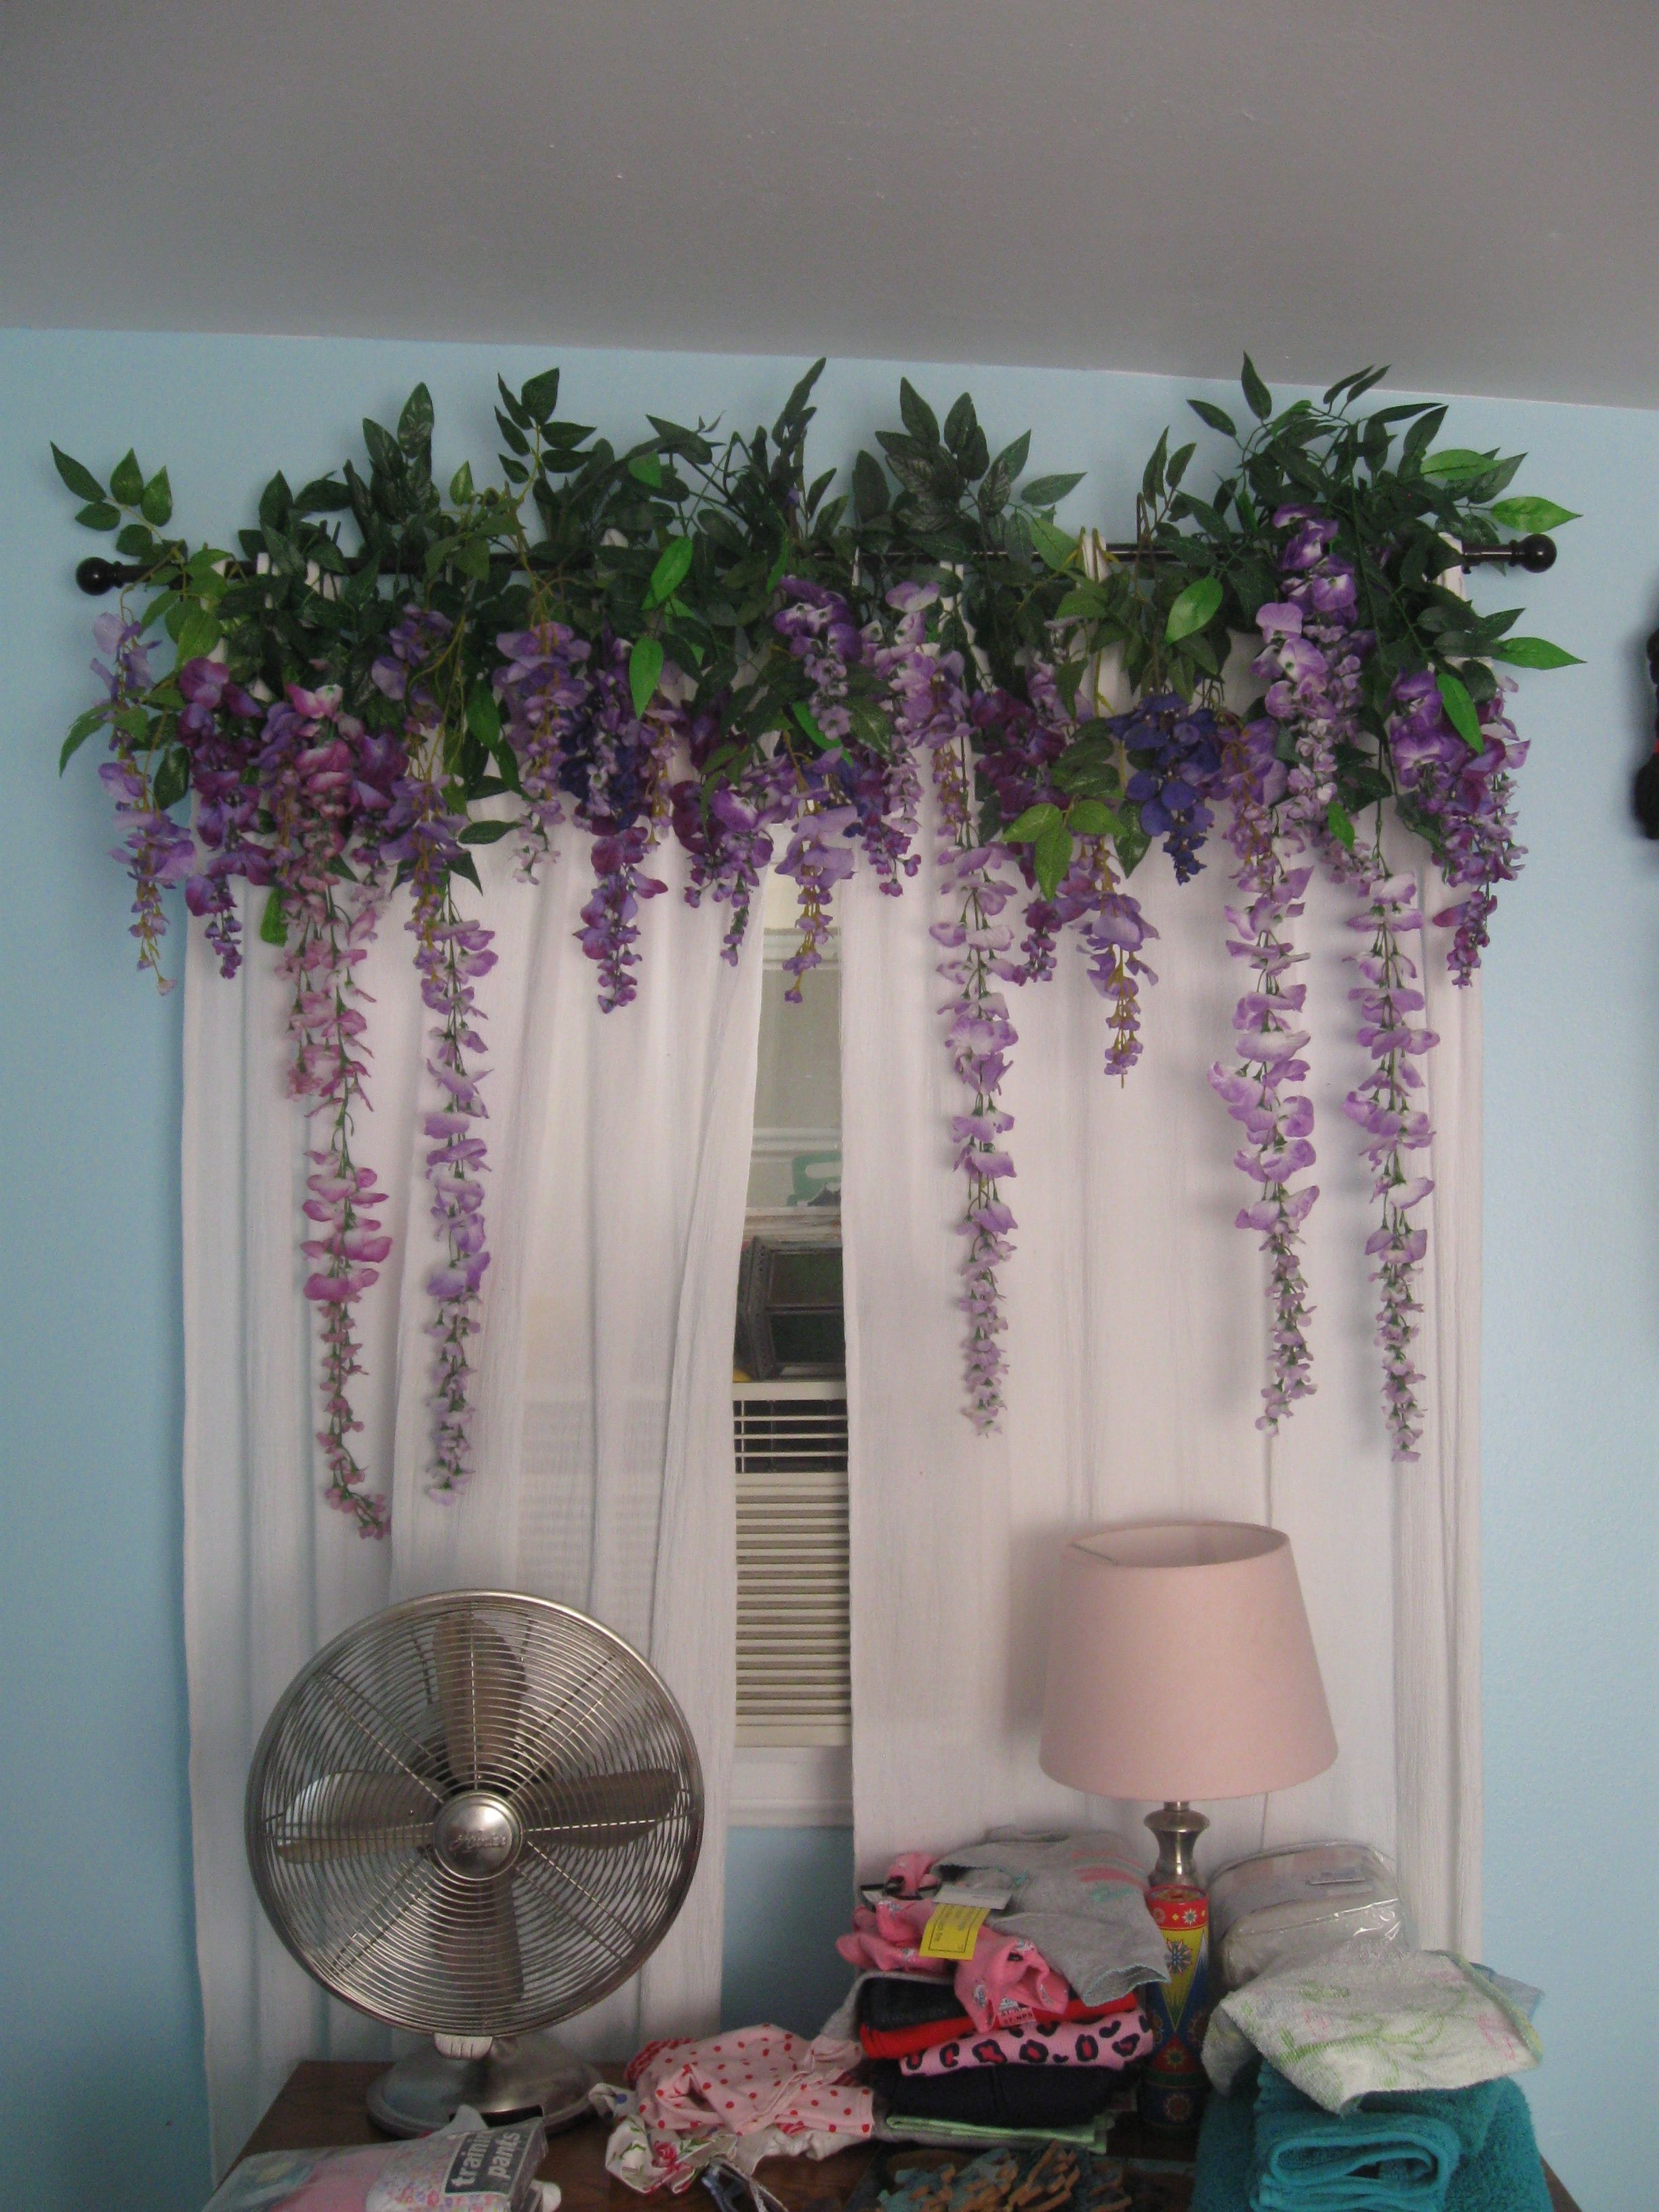 This Is The Wisteria Valance Over The Windows In The Neverland Bedroom The Stems Were Just Bent And Slipped Ove Flower Bedroom Flower Curtain Cozy Room Decor